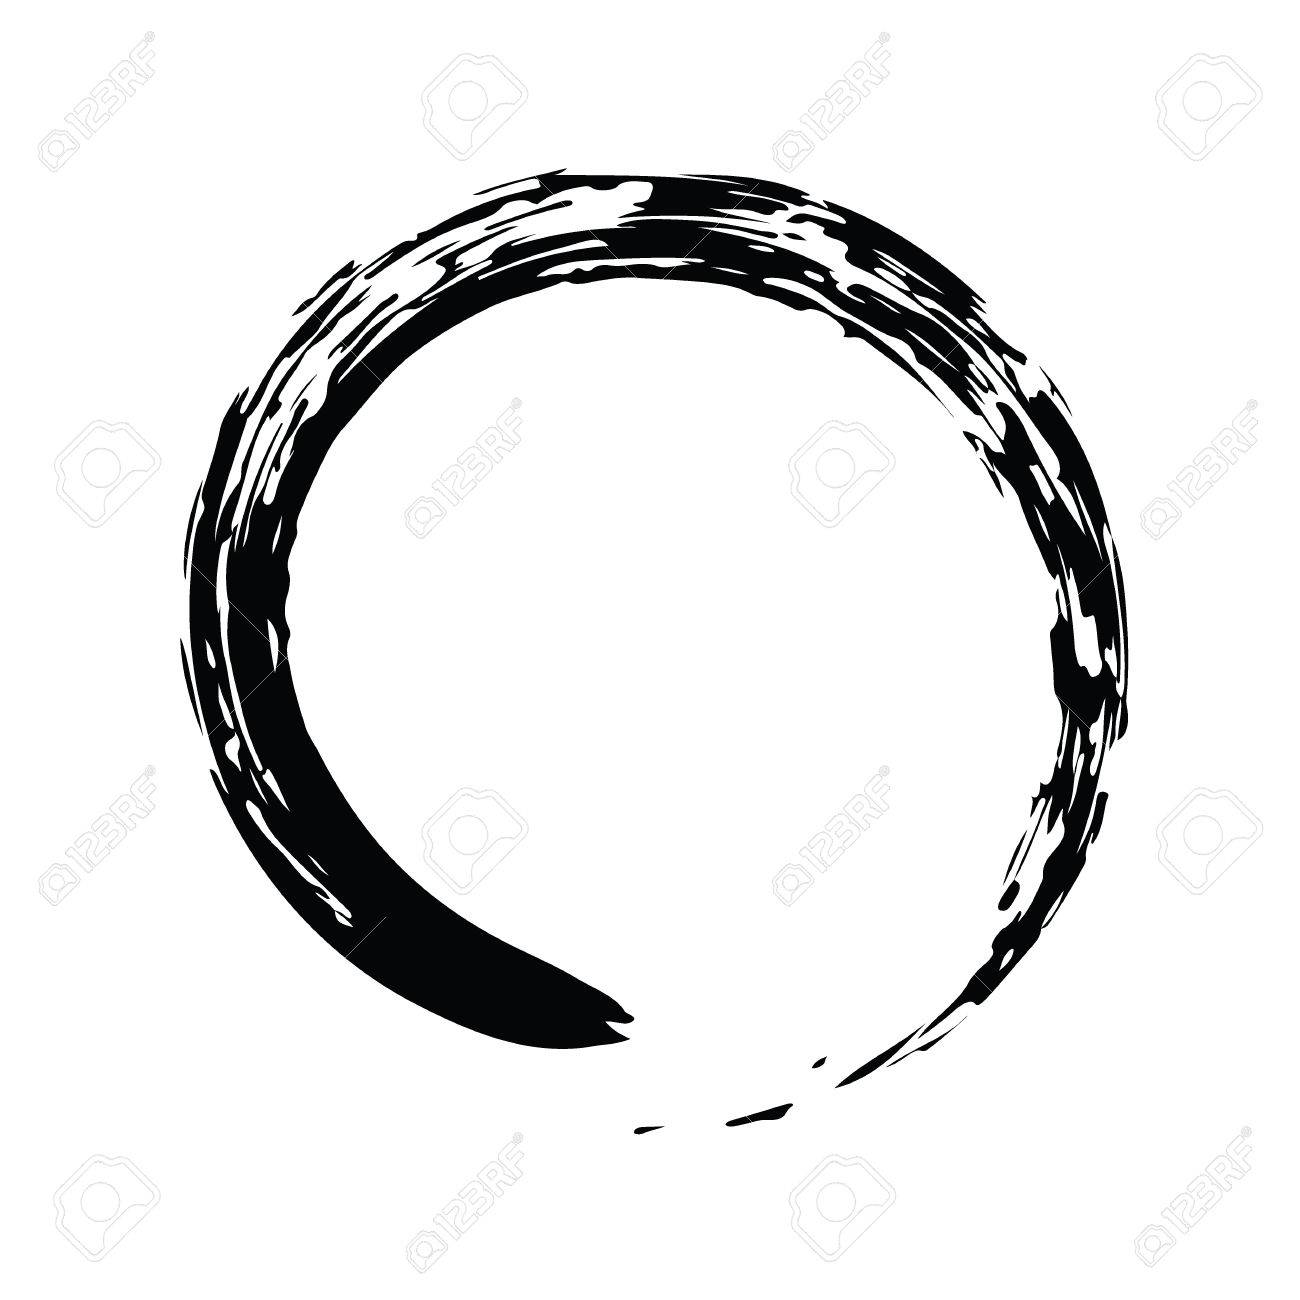 Black chinese brush draw the symbol of zen chinese and japanese black chinese brush draw the symbol of zen chinese and japanese buddhism religion concept biocorpaavc Images